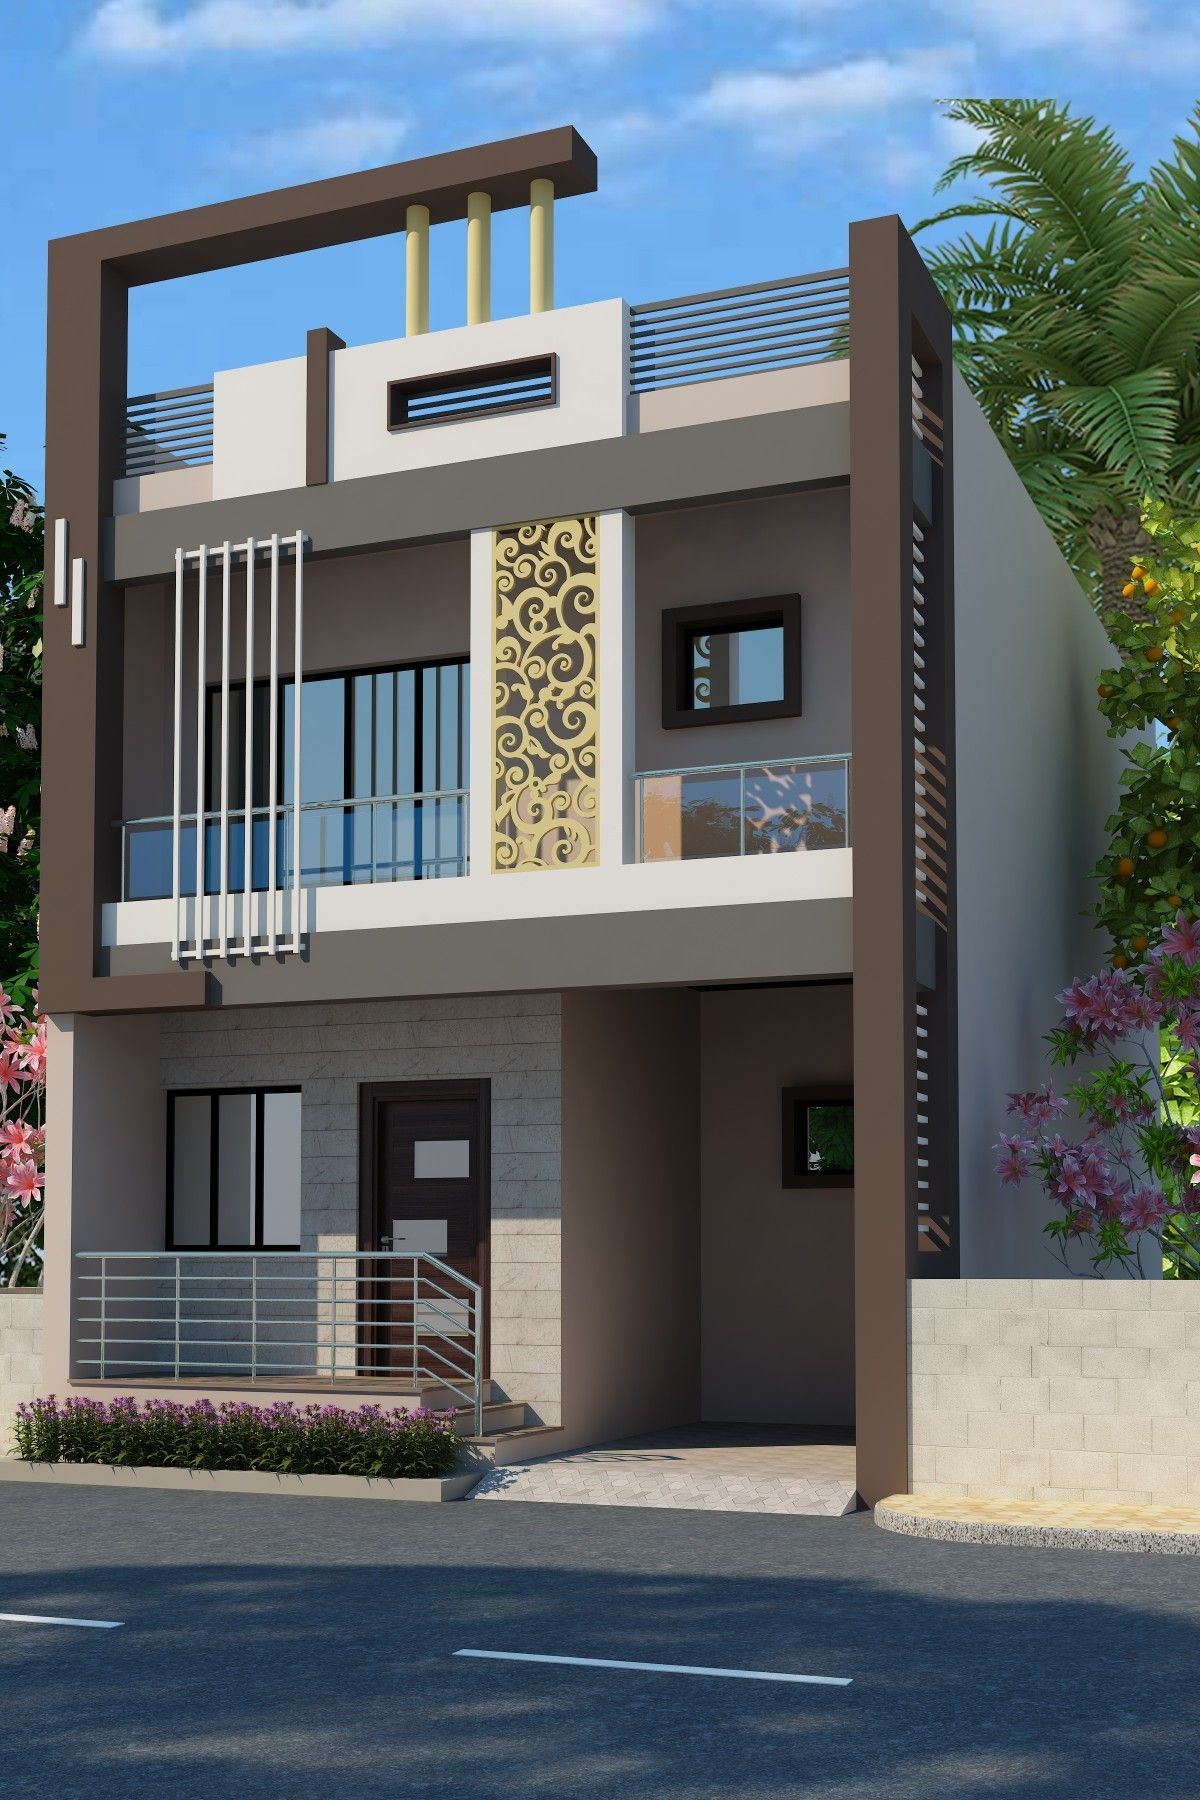 d3e3c6d6296bd3cd2d0158faf022e45a on Modern House Designs Pictures Gallery id=1005771